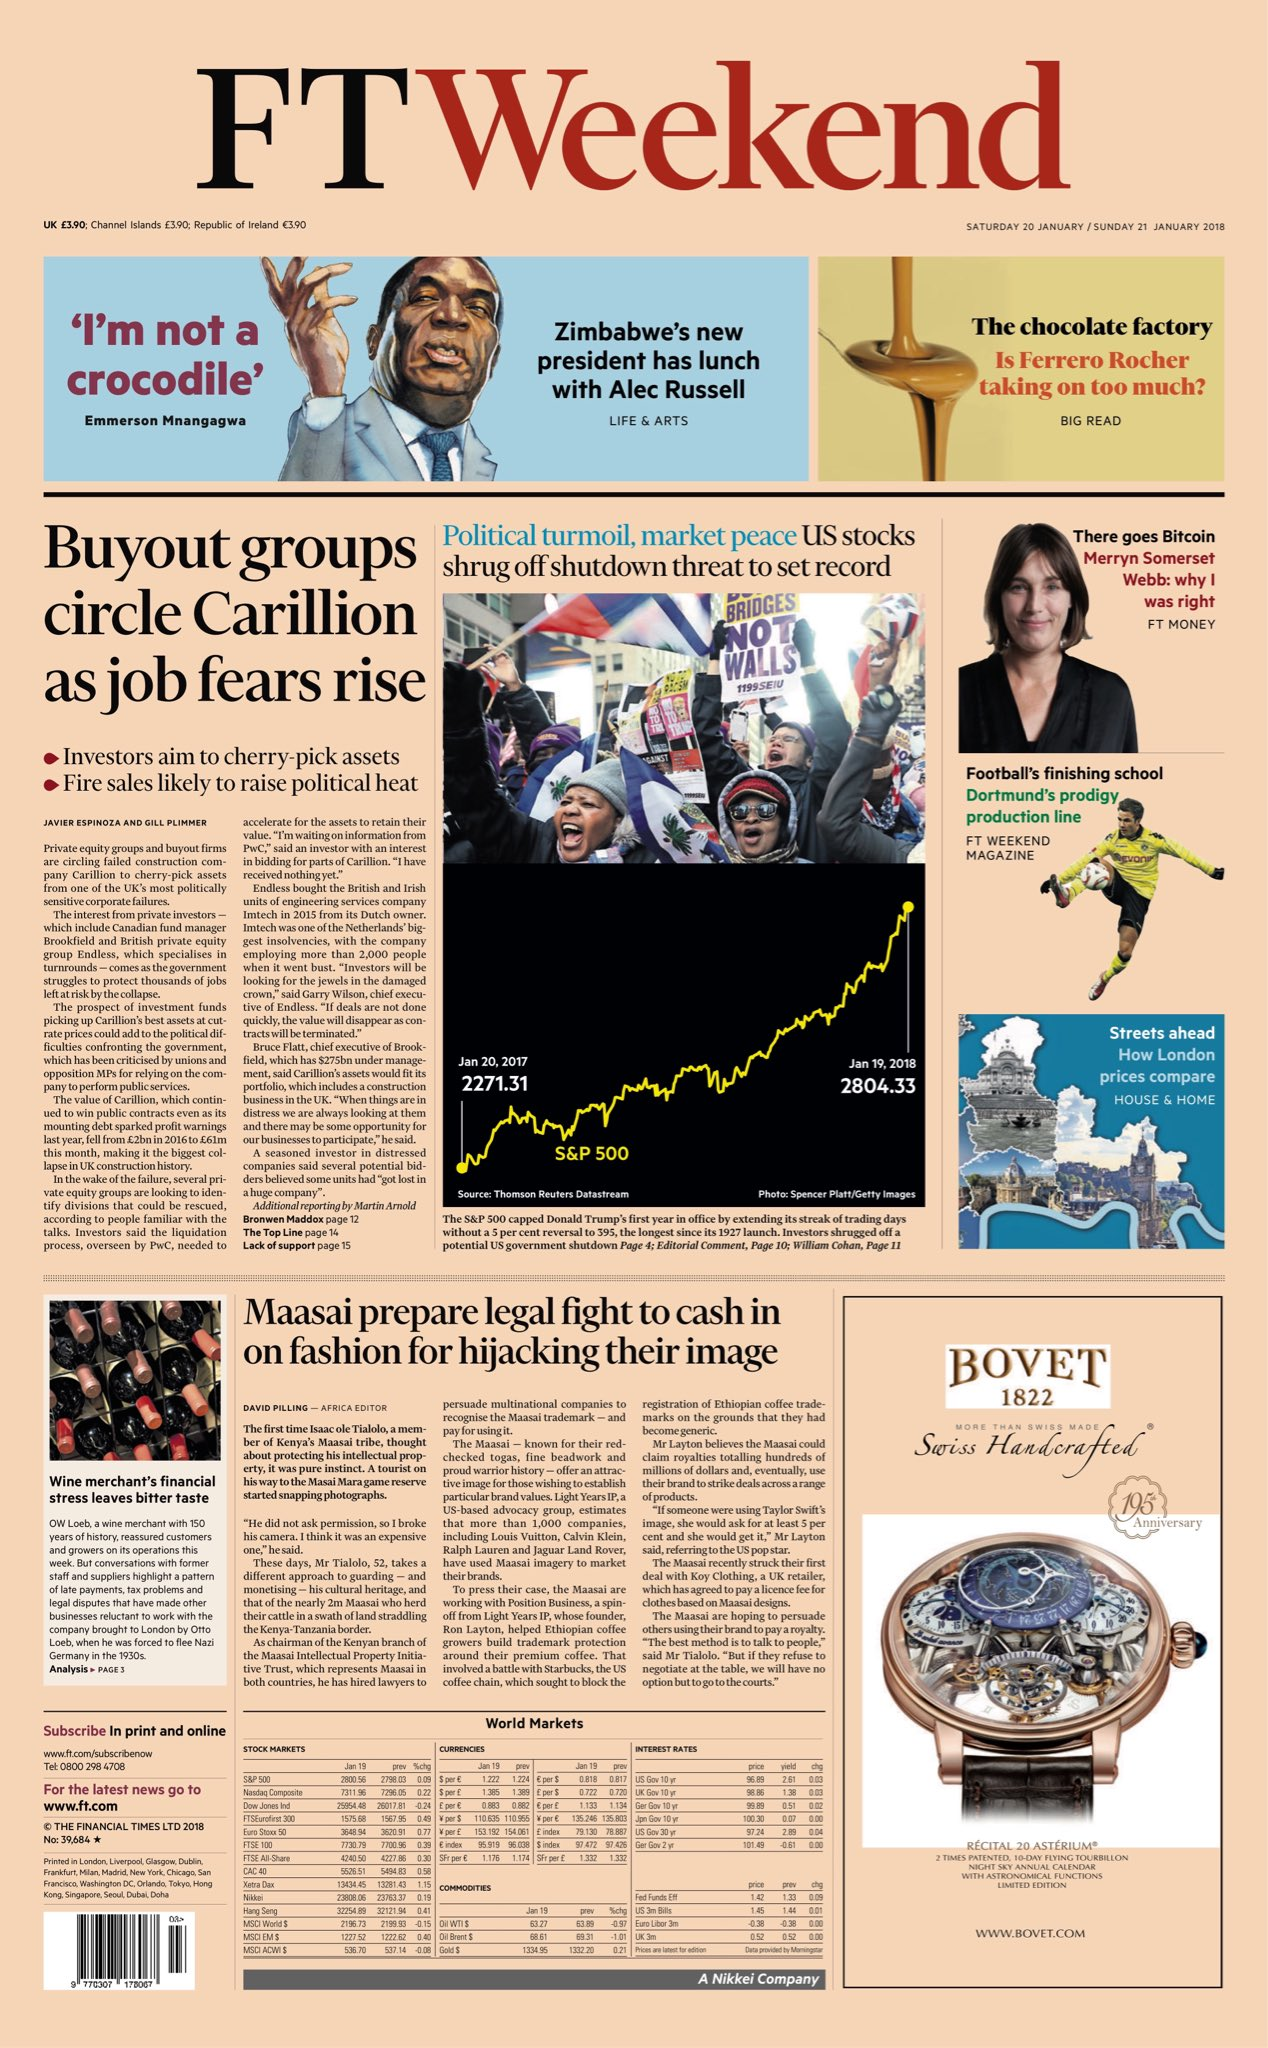 "FT Weekend: ""Buyout groups circle Carillion as job fears rise"" #bbcpapers #tomorrowspaperstoday https://t.co/WzbO2L3VQF"